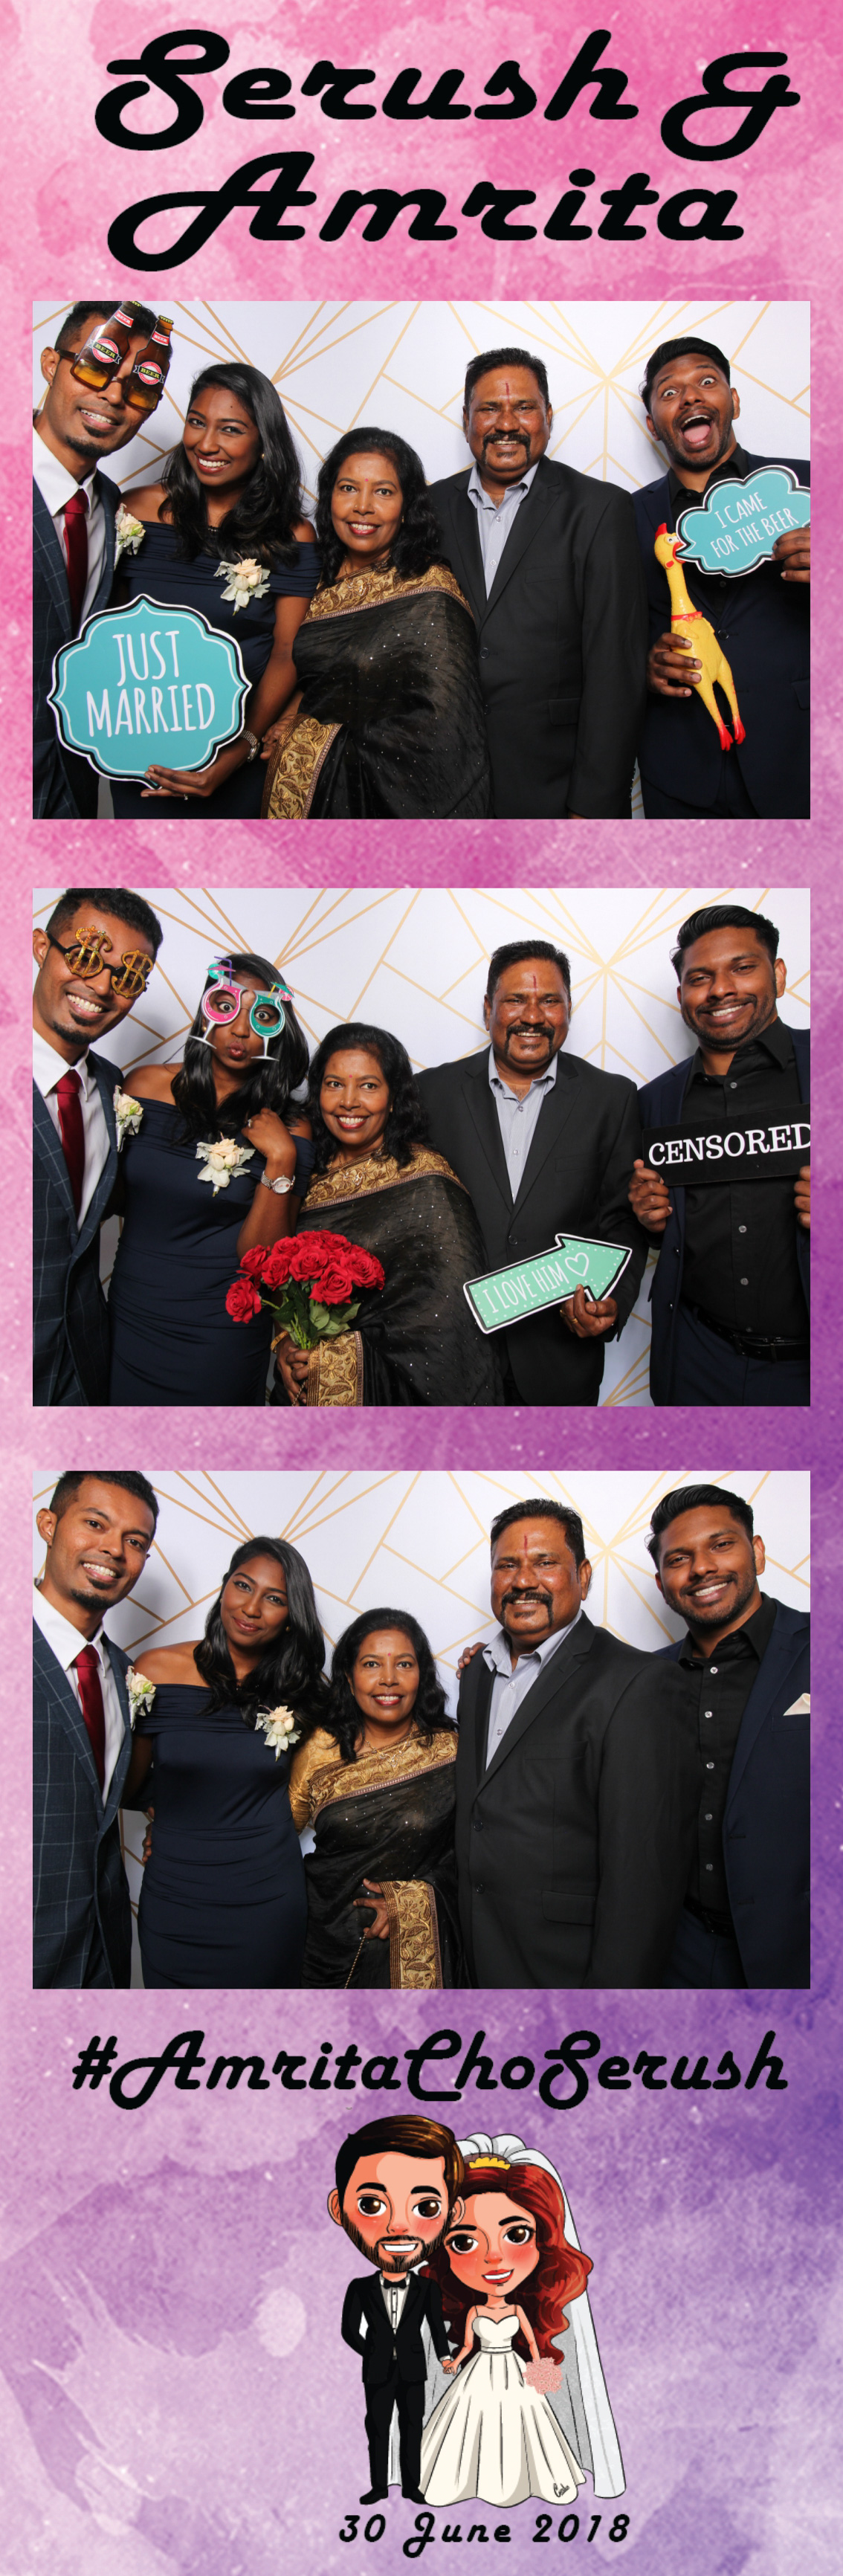 whoots photo booth singapore wedding (16